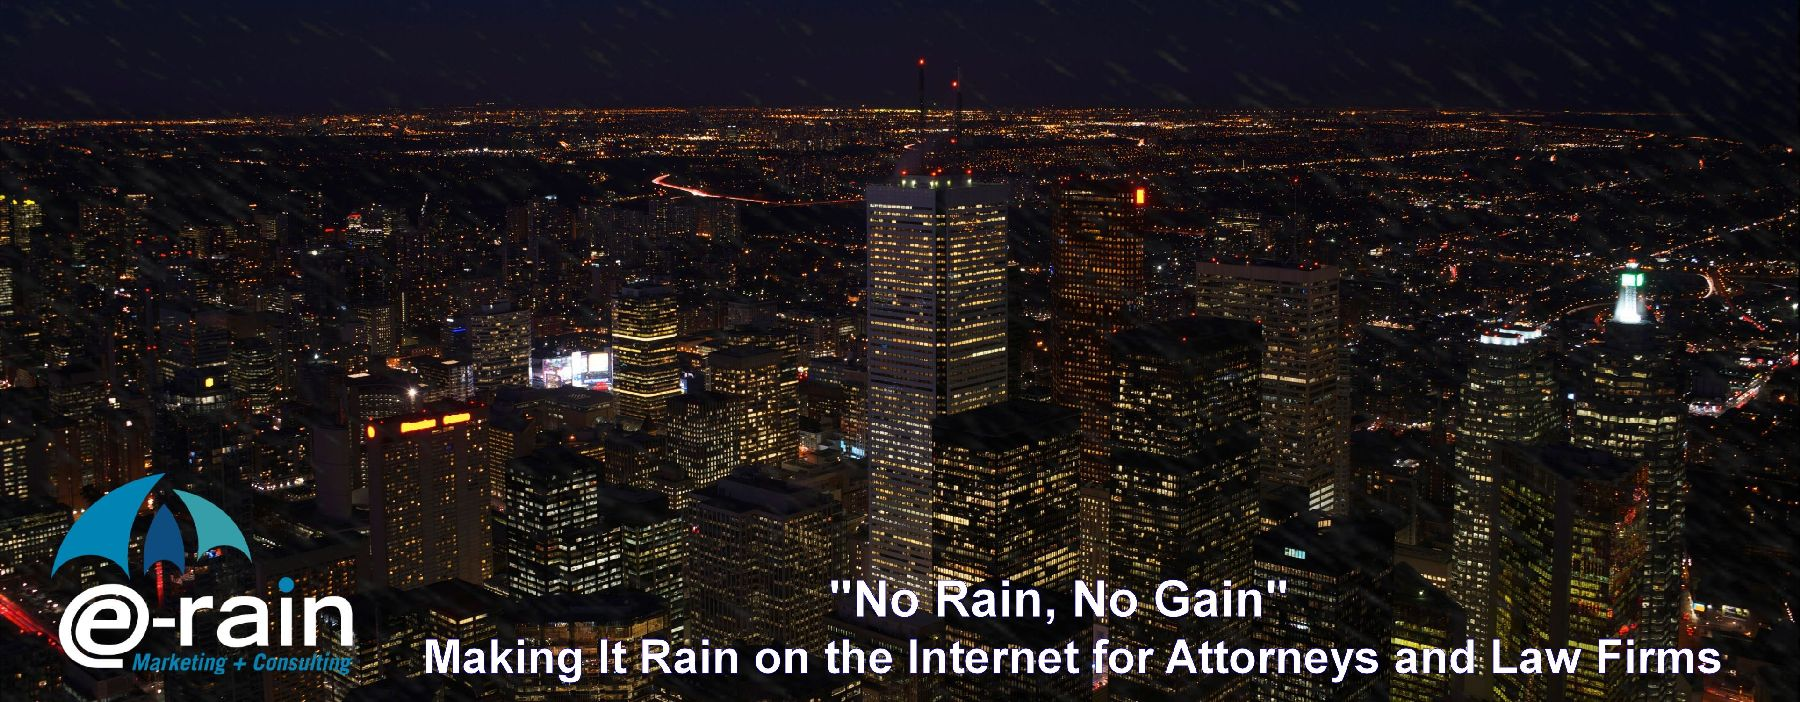 E-Rain:  Making it Rain on the Internet